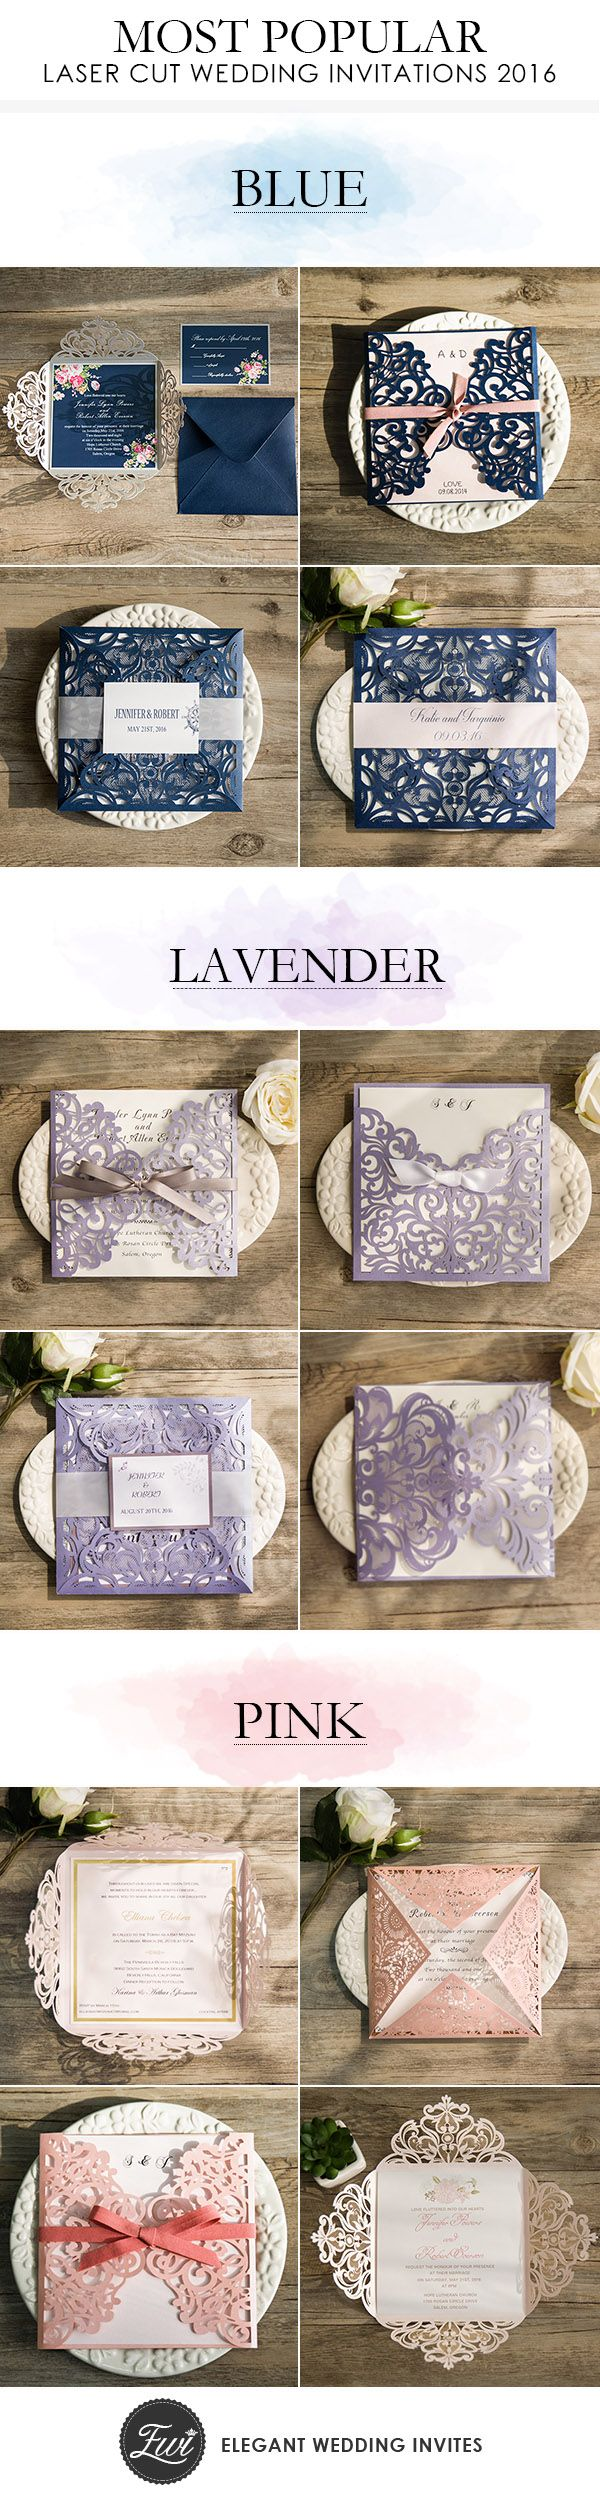 elegant laser cut wedding invitations to match with your wedding colors